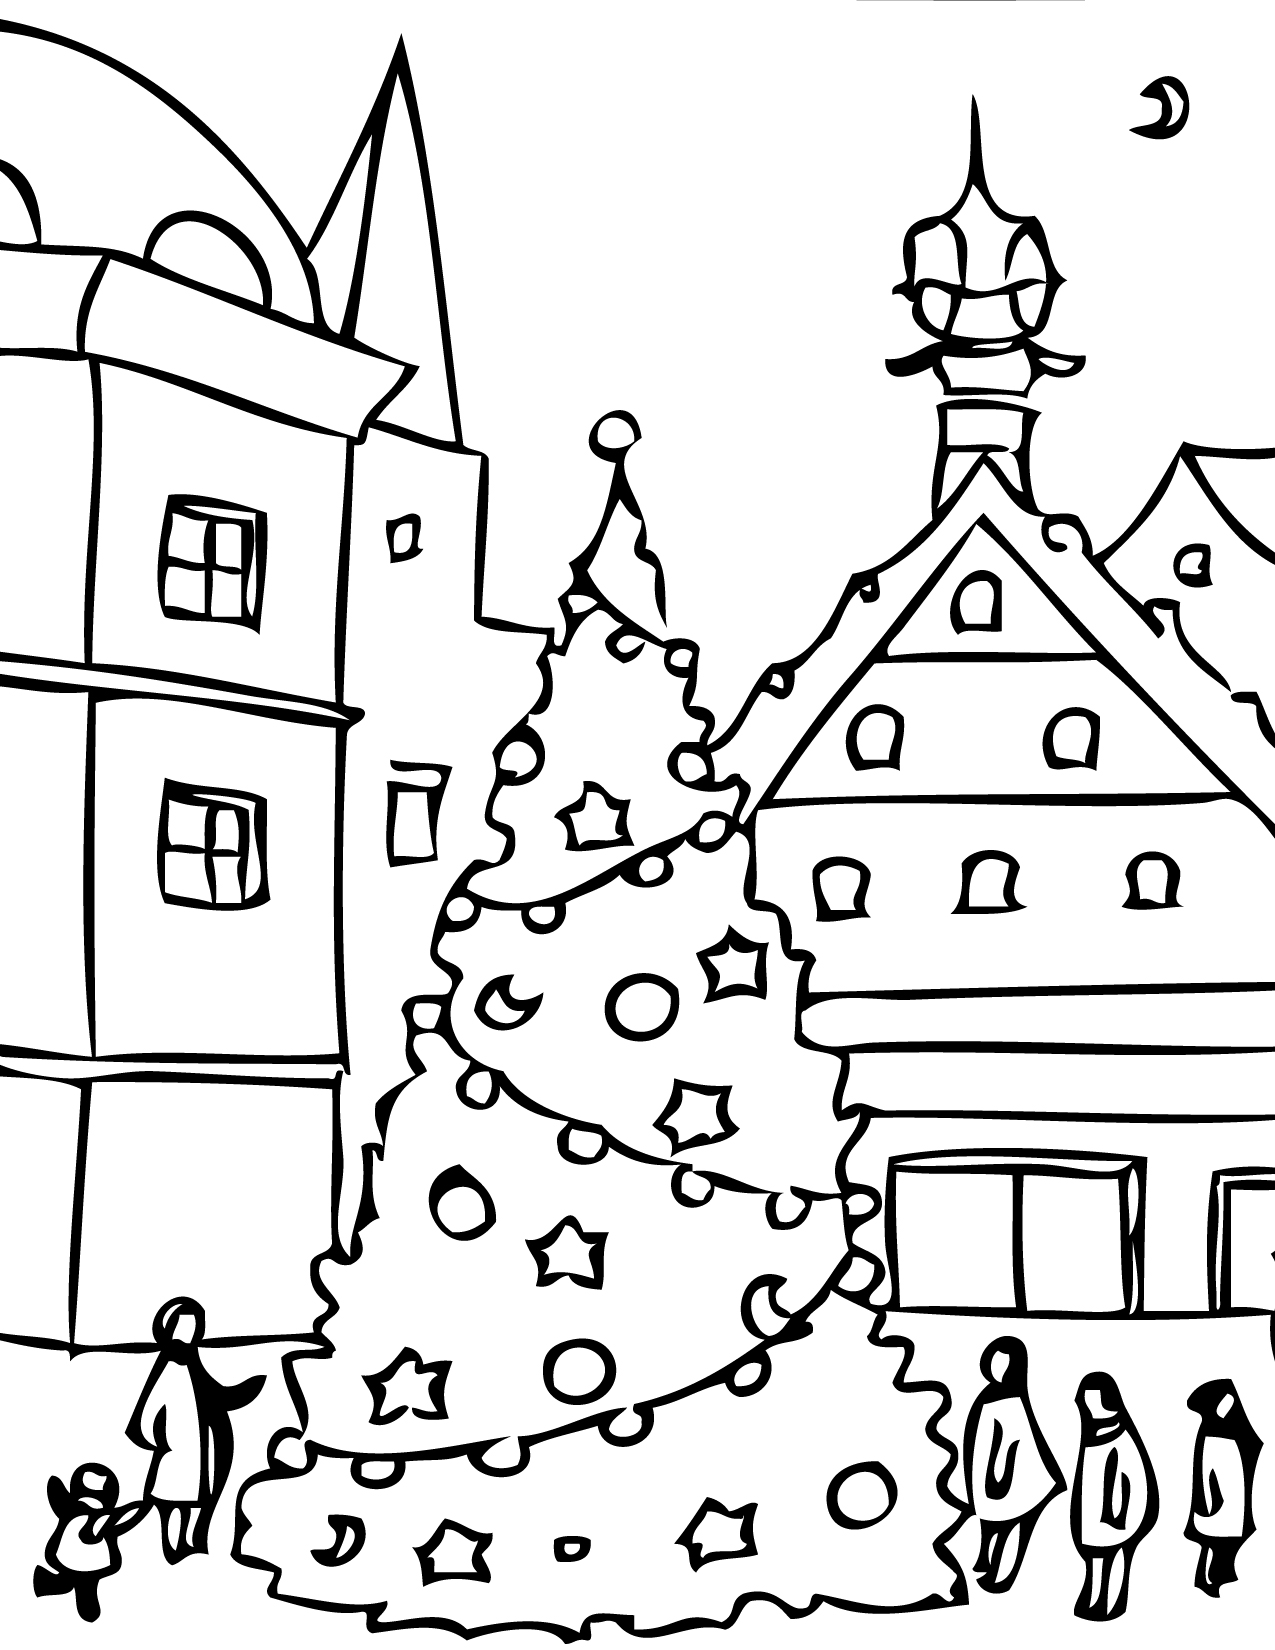 This is a picture of Hilaire Holidays Coloring Book